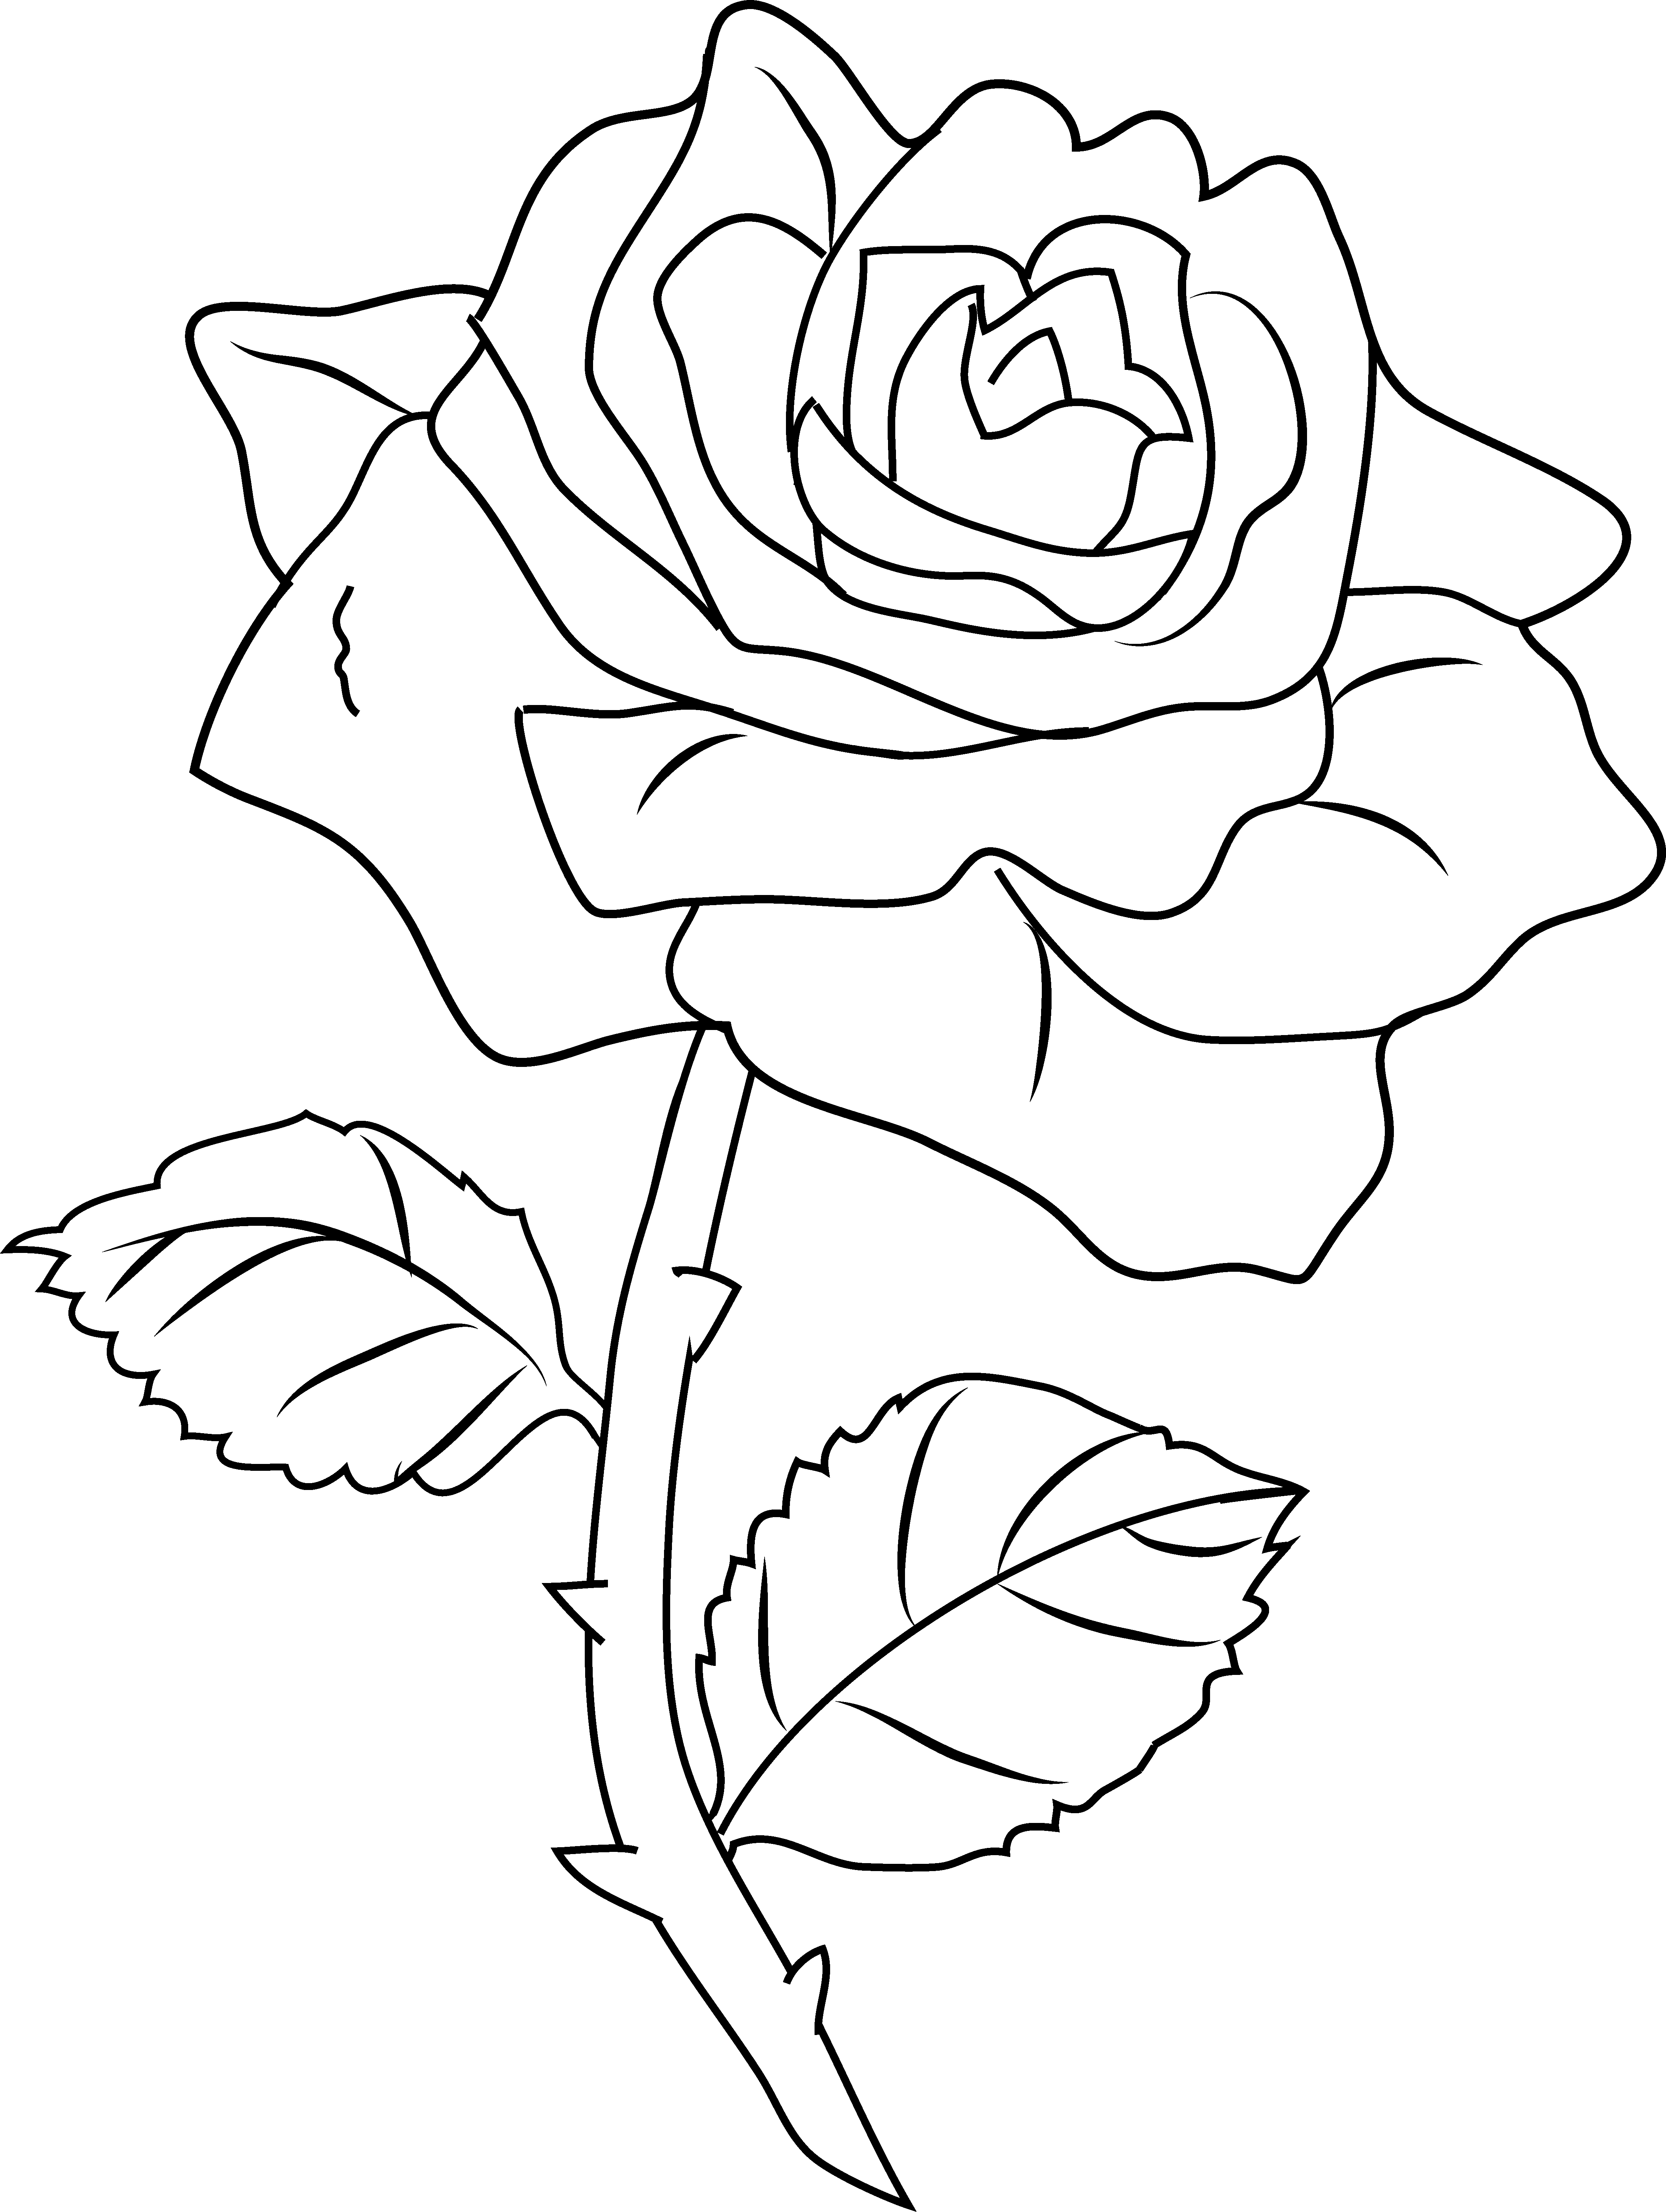 Rose color clipart - Clipground